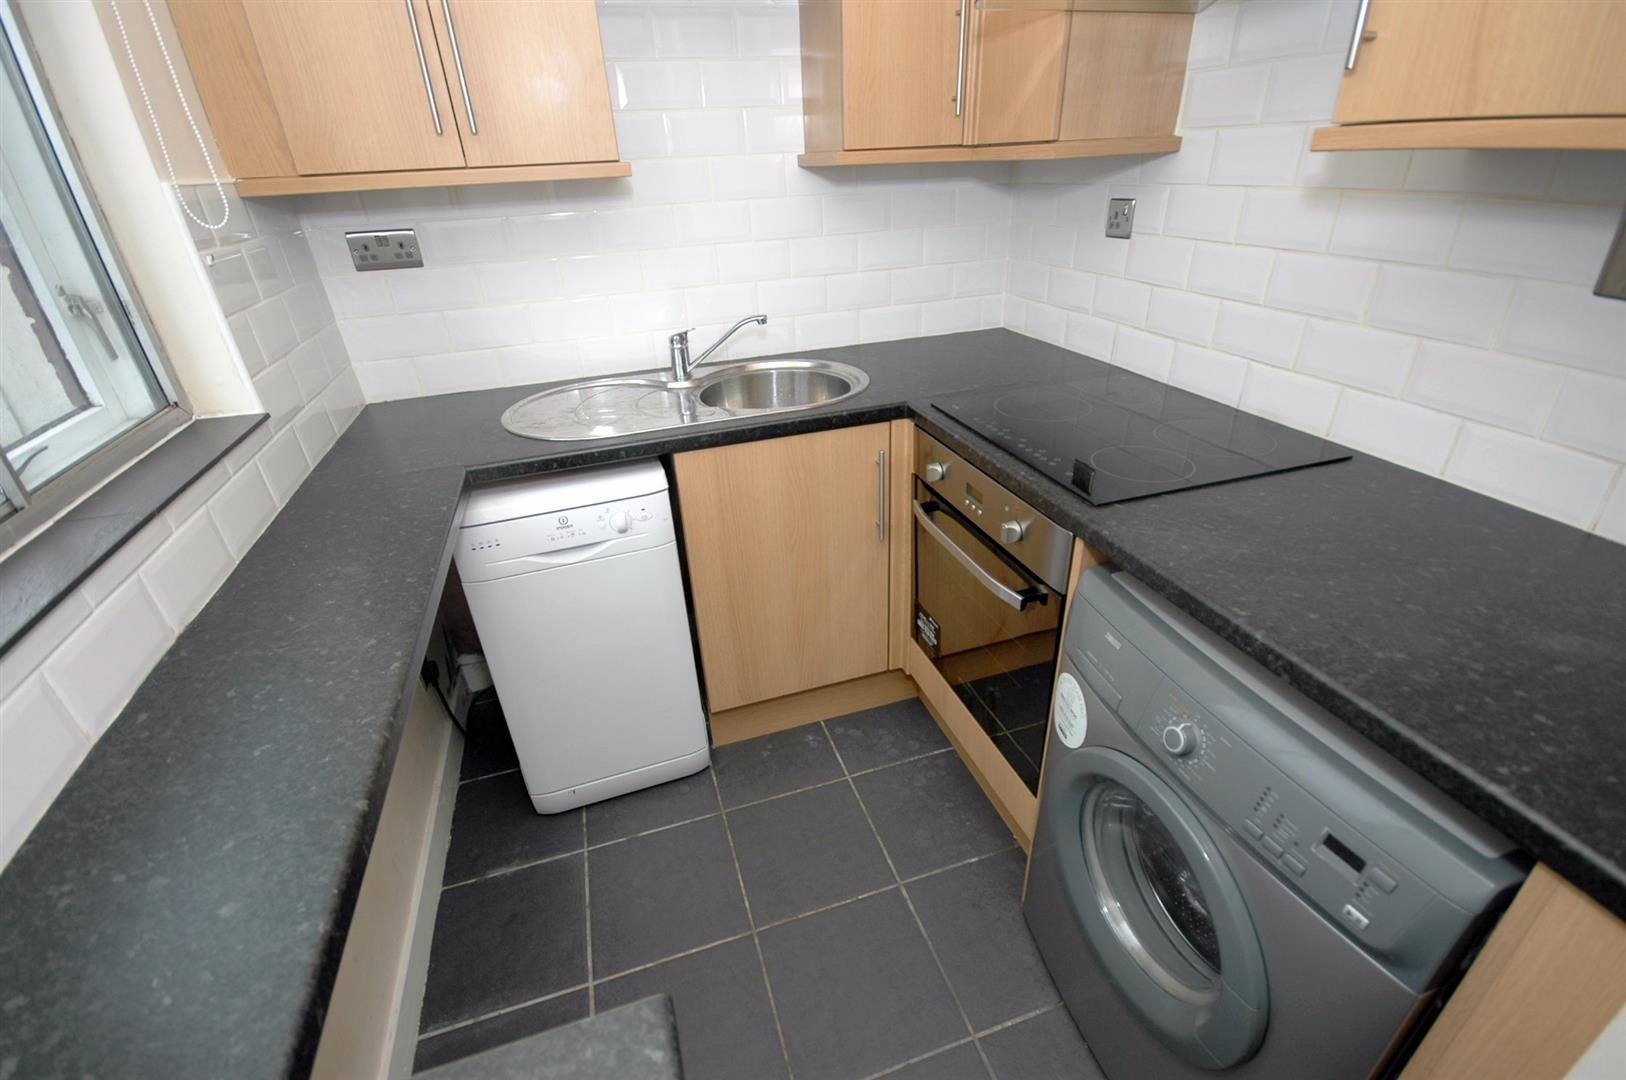 1 bed flat to rent in Harlequin Court, Cardiff, CF24